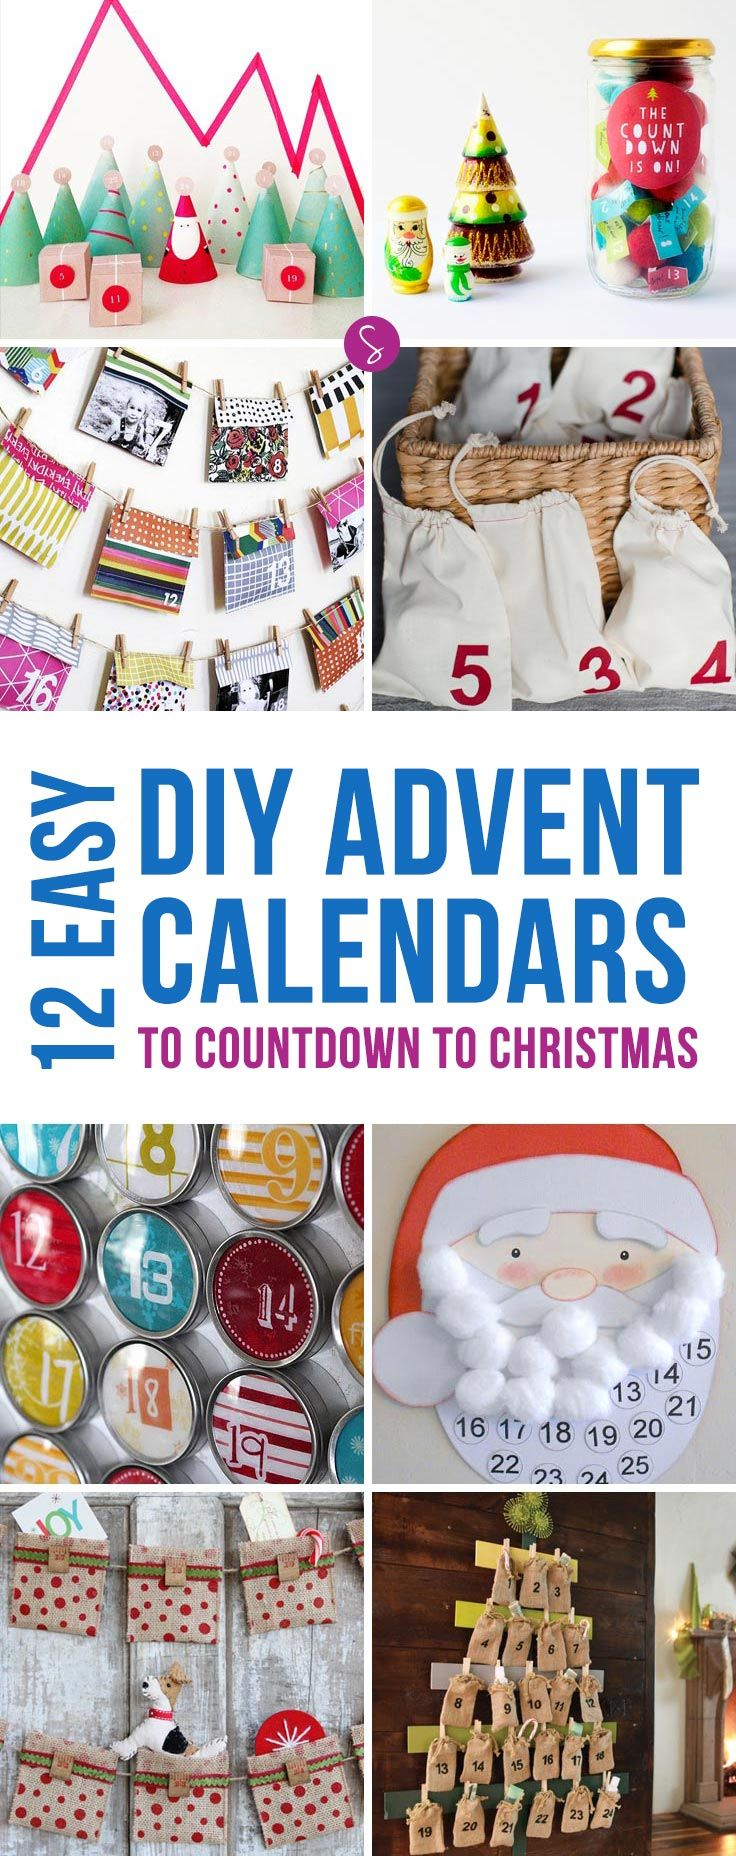 These easy advent calendars to make at home are just what we need to count down to Christmas!